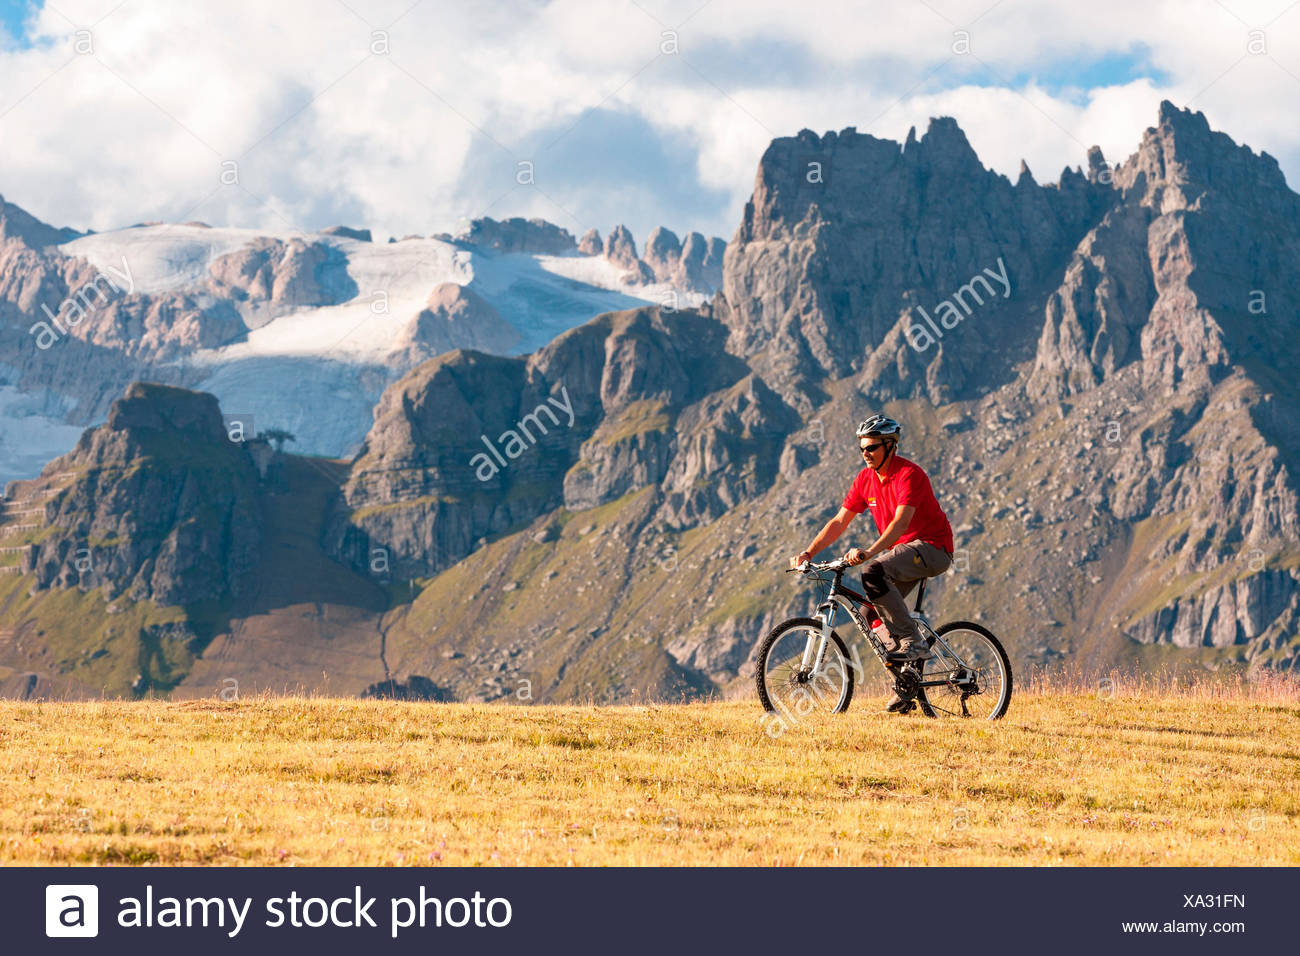 MTB on Cherz alp. Arabba, Veneto, Italy. - Stock Image